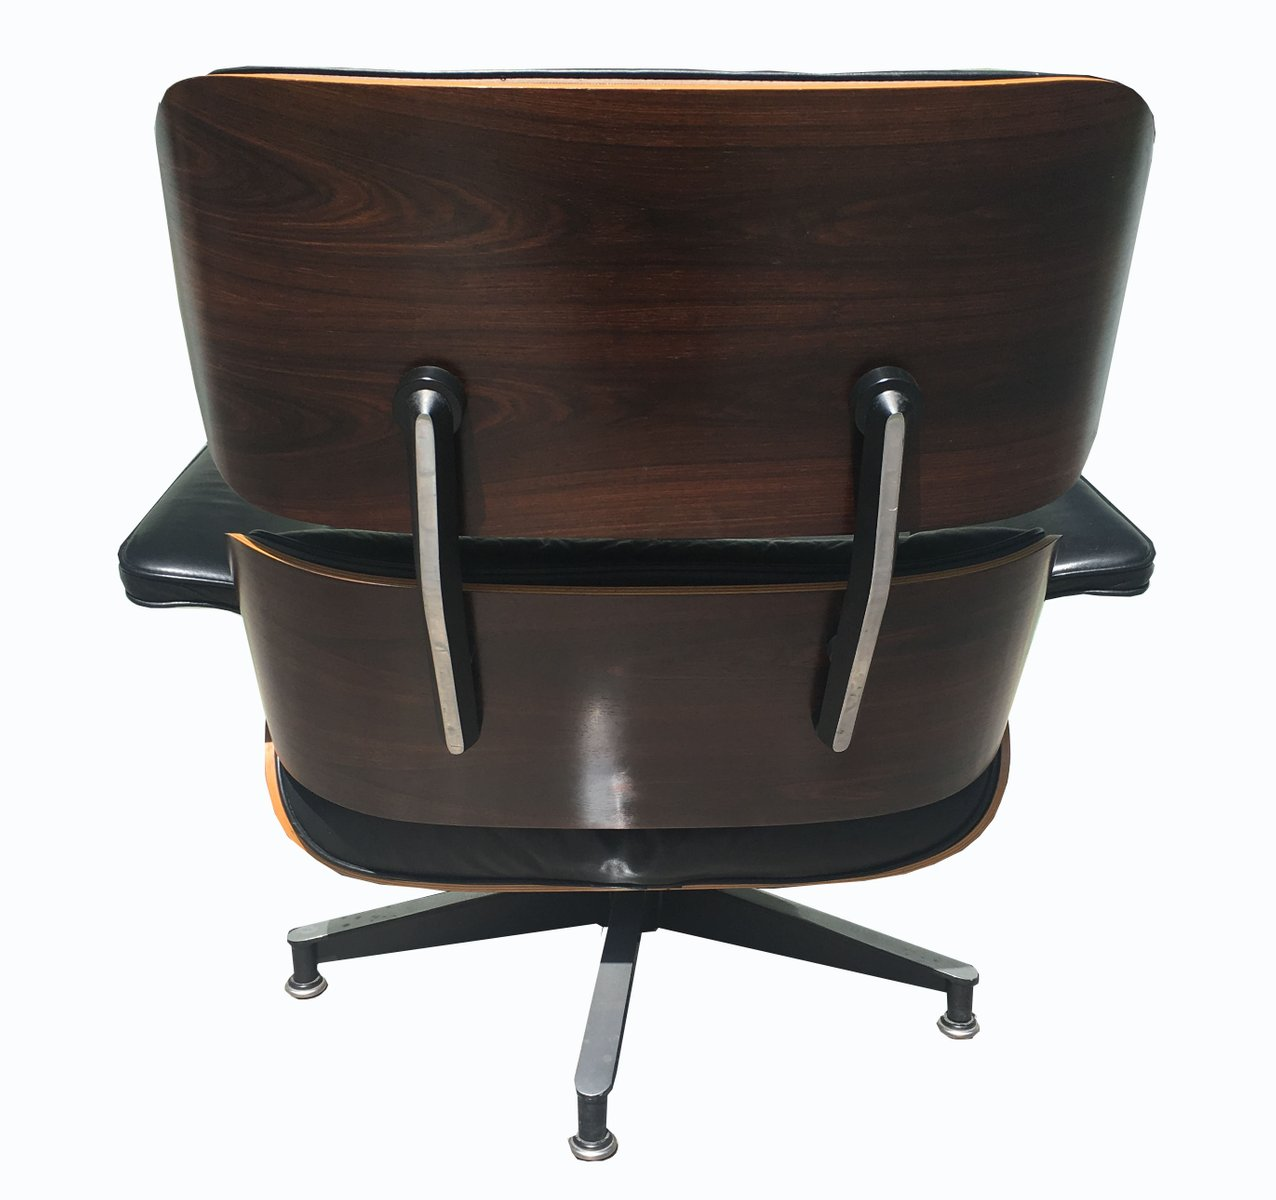 670 671 lounge chair ottoman by charles and ray eames. Black Bedroom Furniture Sets. Home Design Ideas